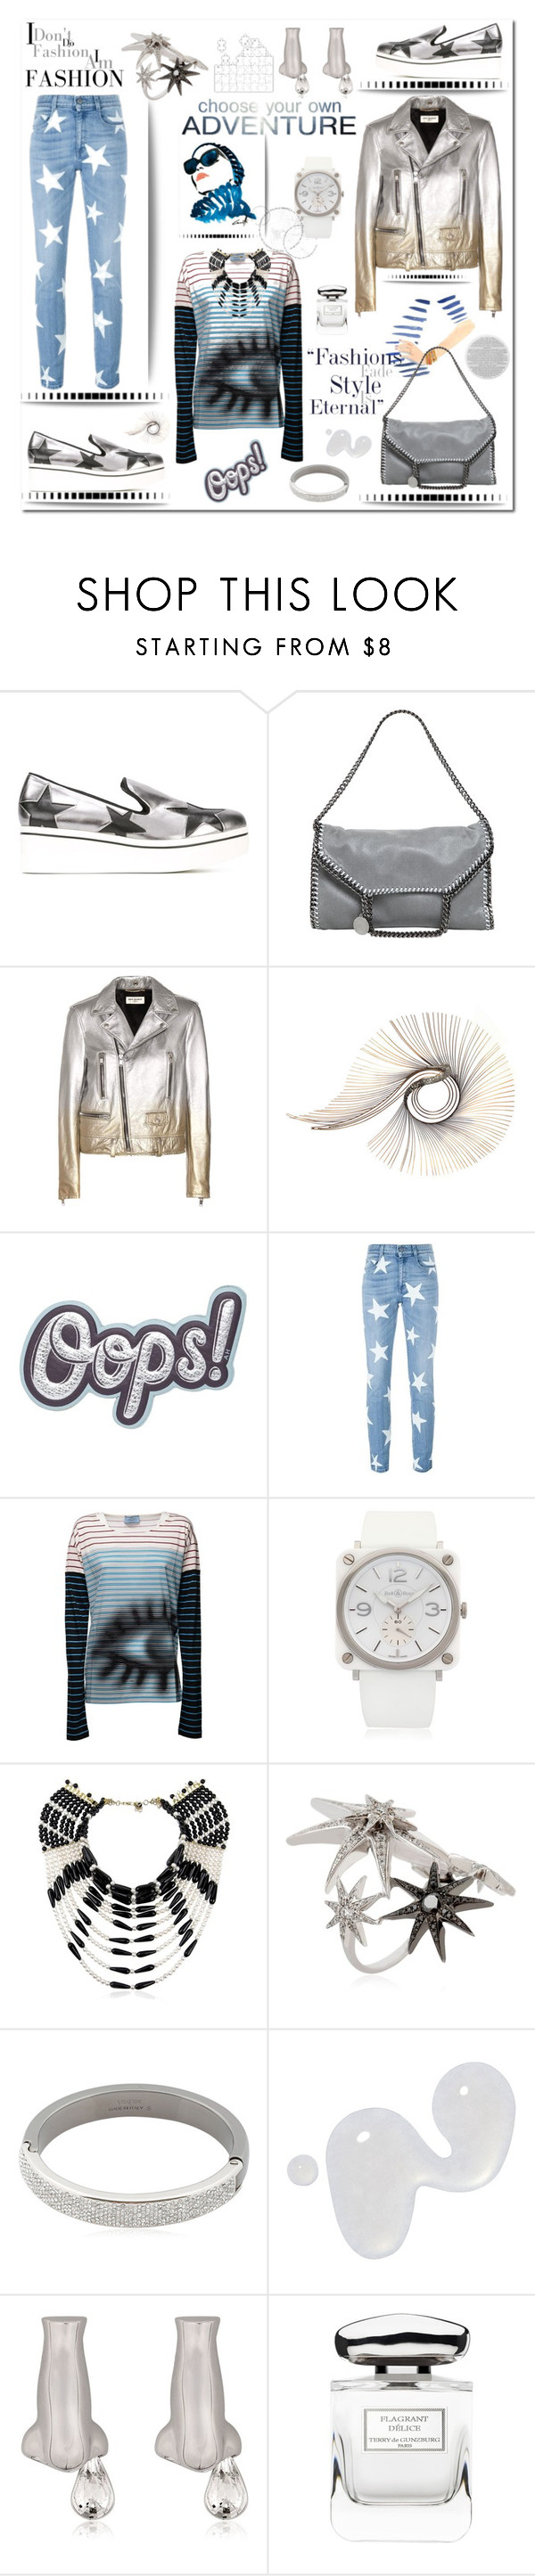 """""""OOPS!"""" by zabead ❤ liked on Polyvore featuring STELLA McCARTNEY, Yves Saint Laurent, C. Jeré, Anya Hindmarch, Prada, Bell & Ross, Rosantica, Colette Jewelry, Vita Fede and Illamasqua"""